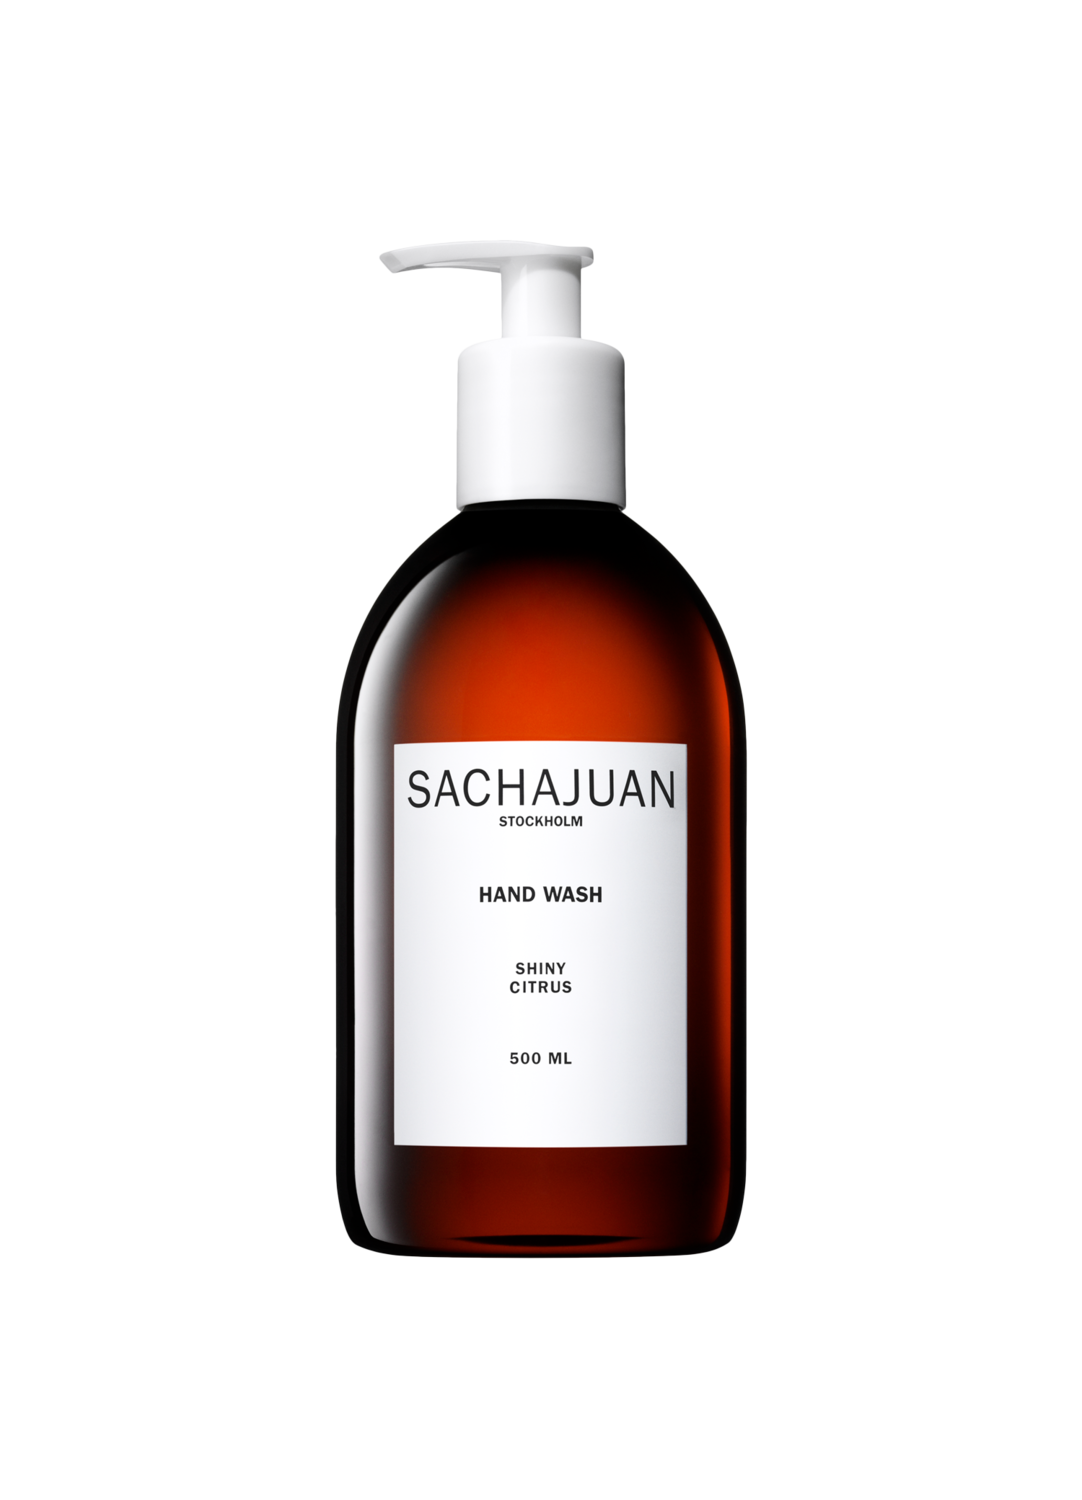 sachajuan | hand wash - shiny citrus[product_type ]sachajuan - Kiss and Makeup